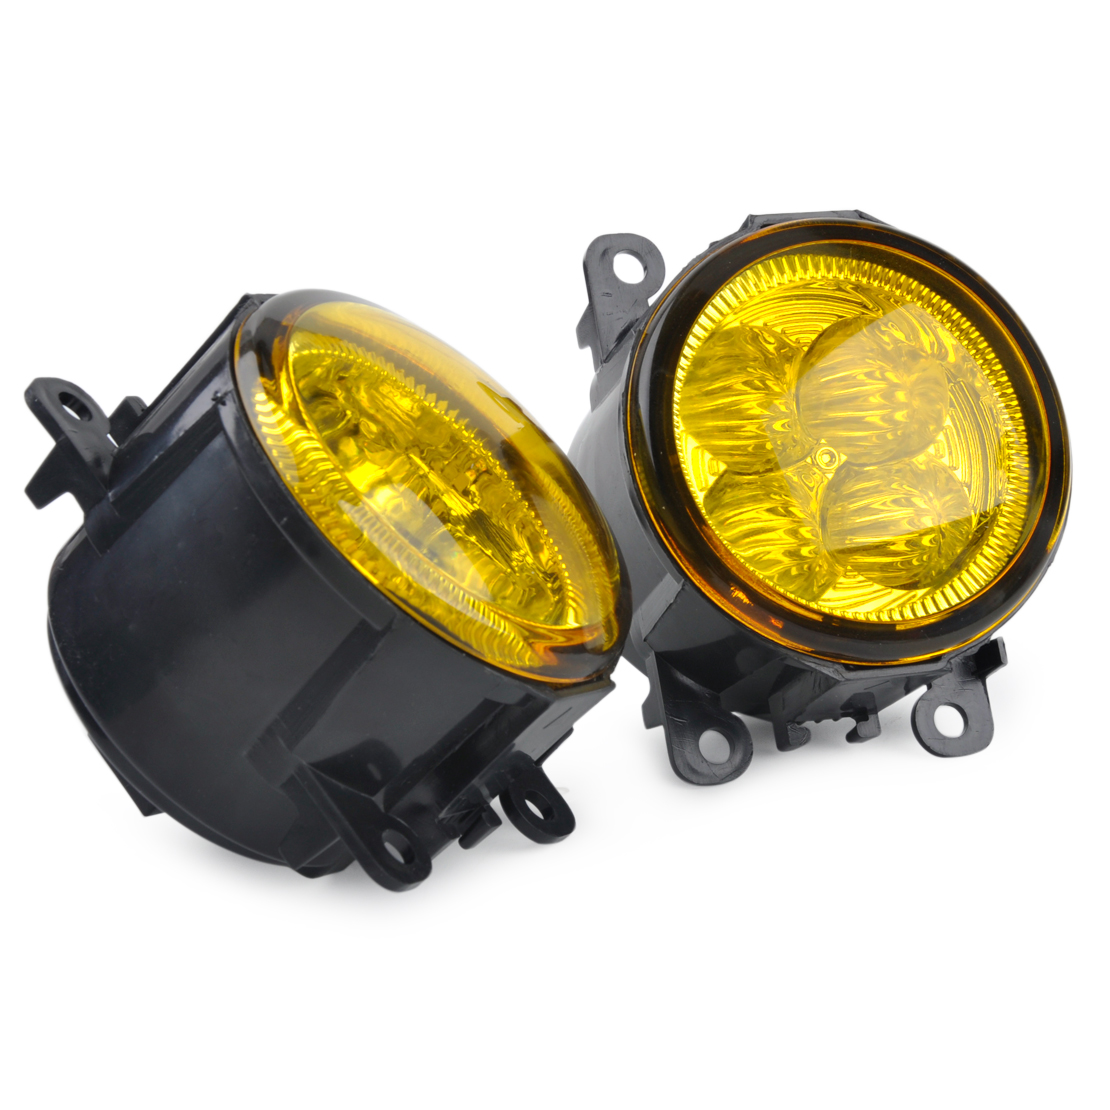 beler 2pcs Highlighted LED Fog Light Lamp with Yellow Lens Replacement 33900-T0A-A01 for Ford Focus Acura Honda Subaru Nissan dwcx fog light lamp female adapter wiring harness sockets wire connector for ford focus acura nissan honda cr v infiniti subaru